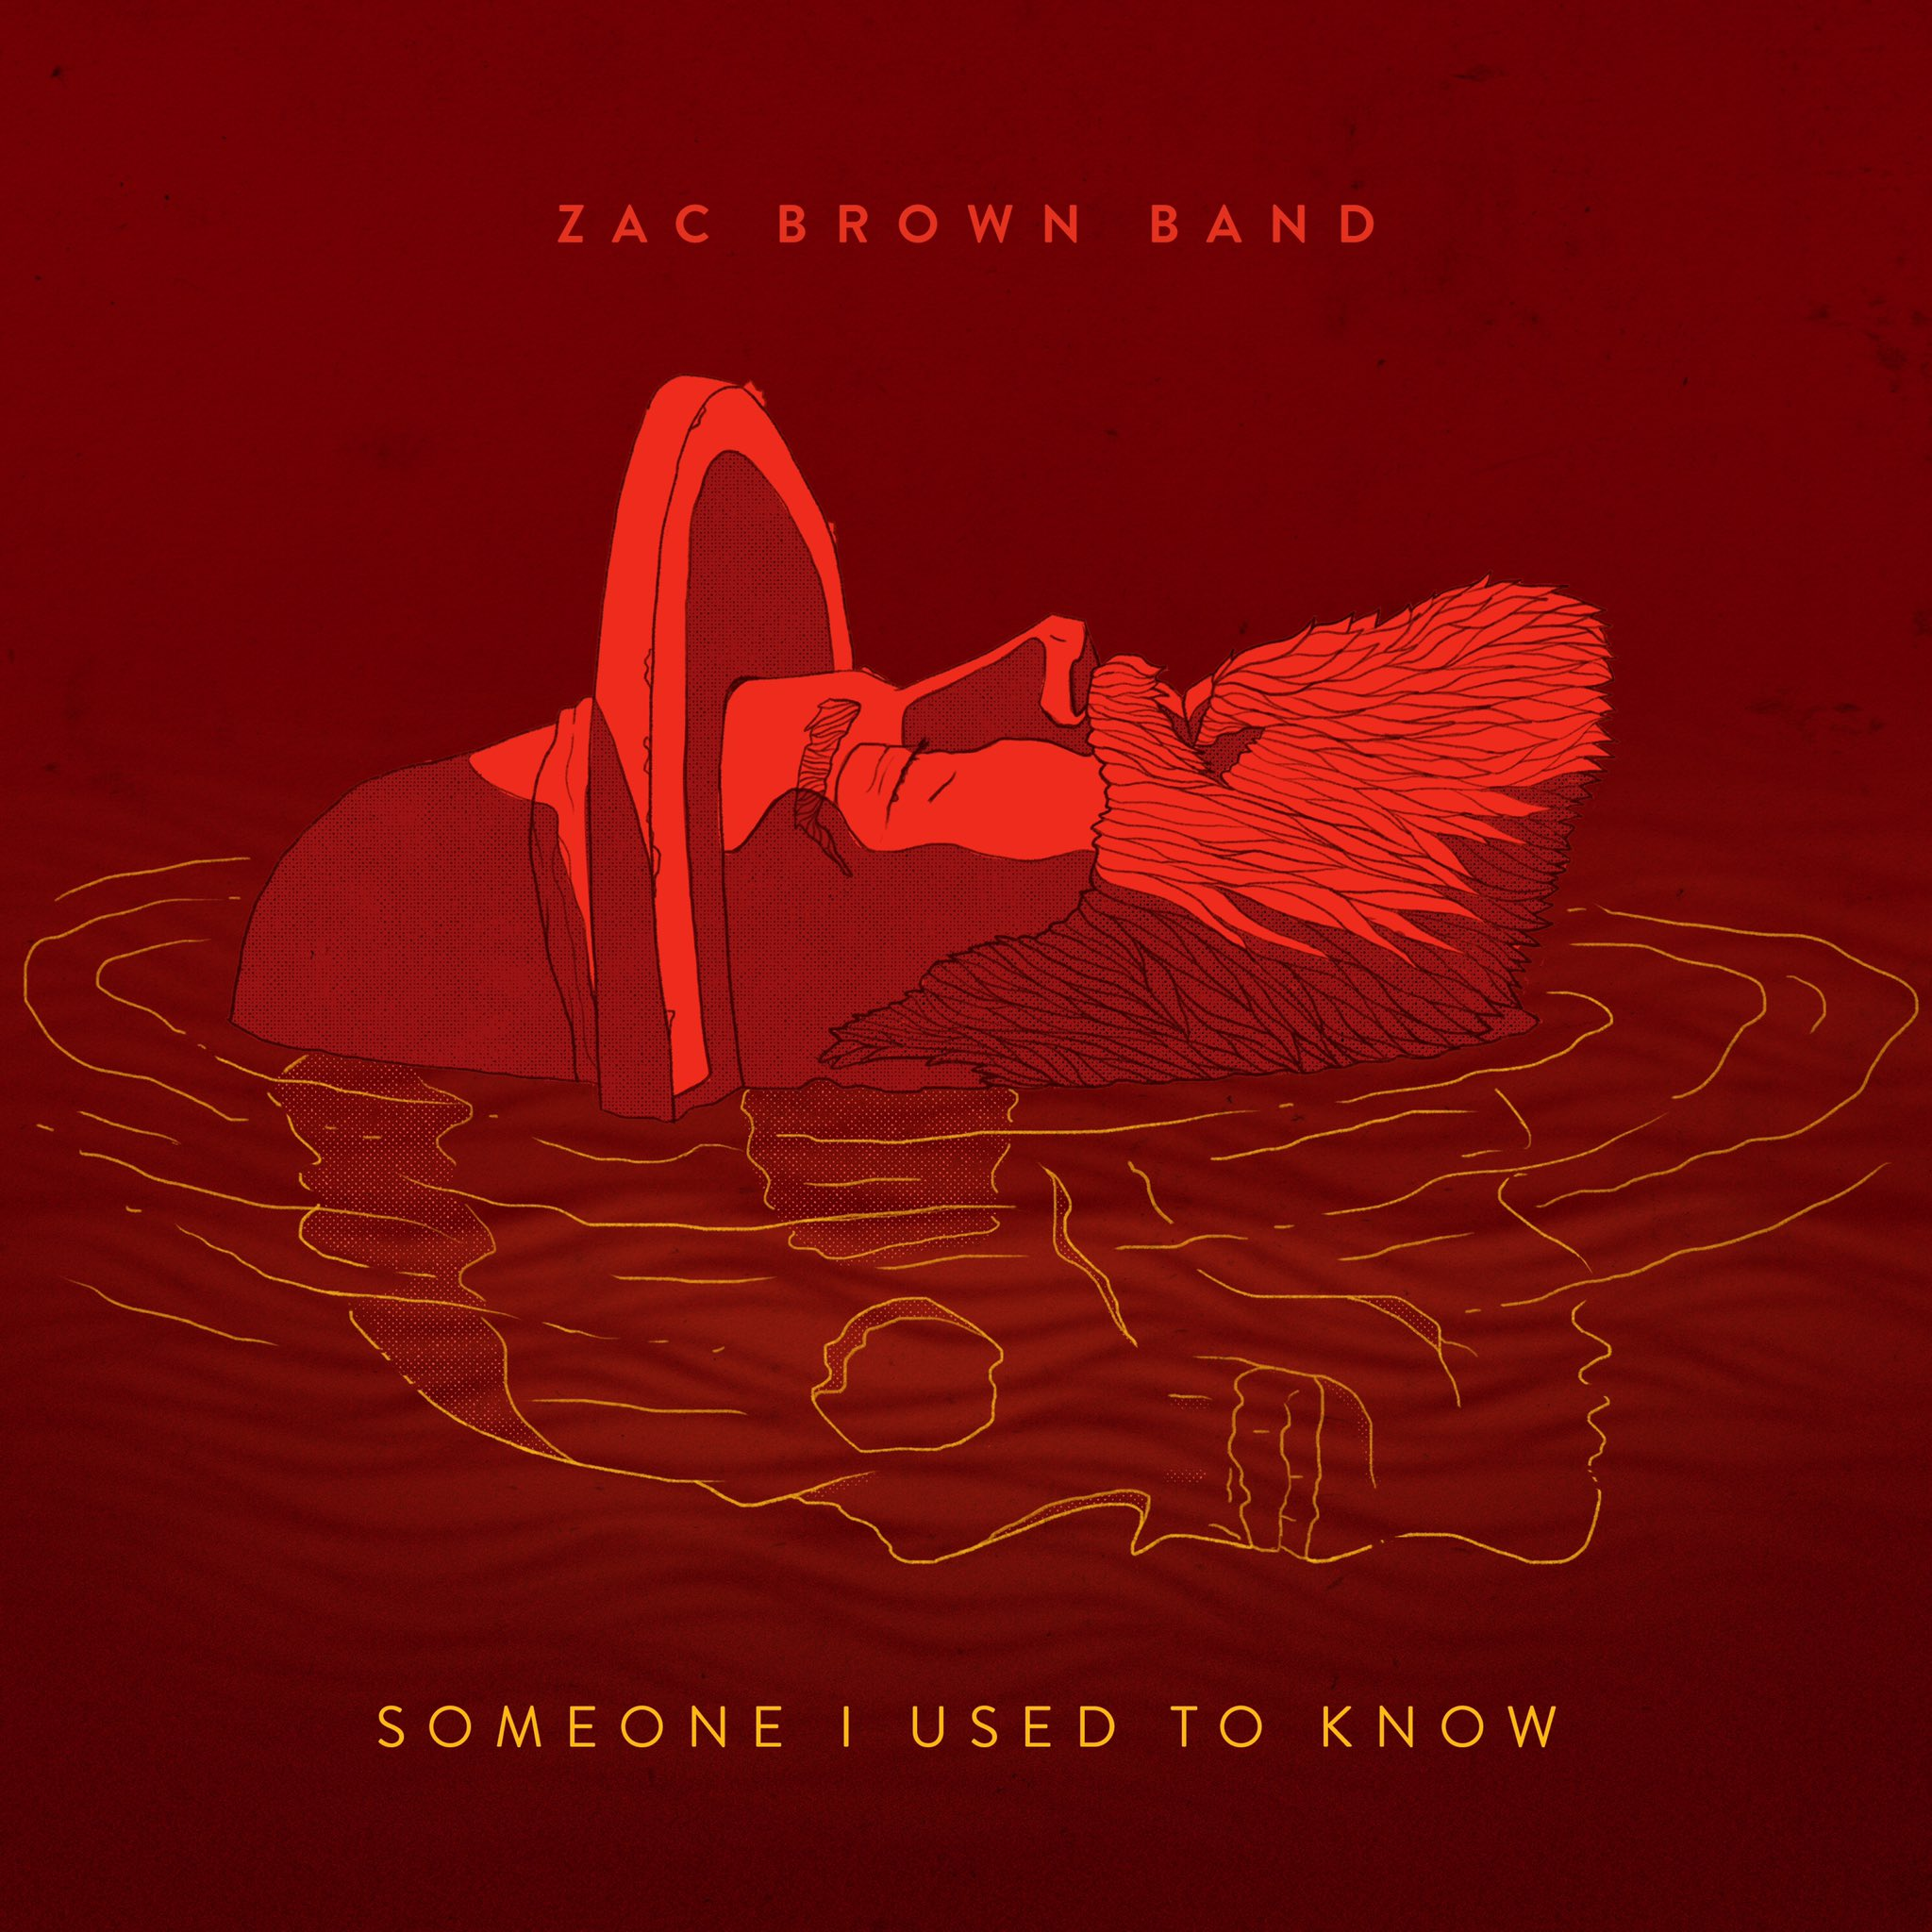 New single #SomeoneIUsedToKnow out now. Co-written by @ShawnMendes.  Listen at https://t.co/ik73ZeyPsq https://t.co/iRLW17LKcs